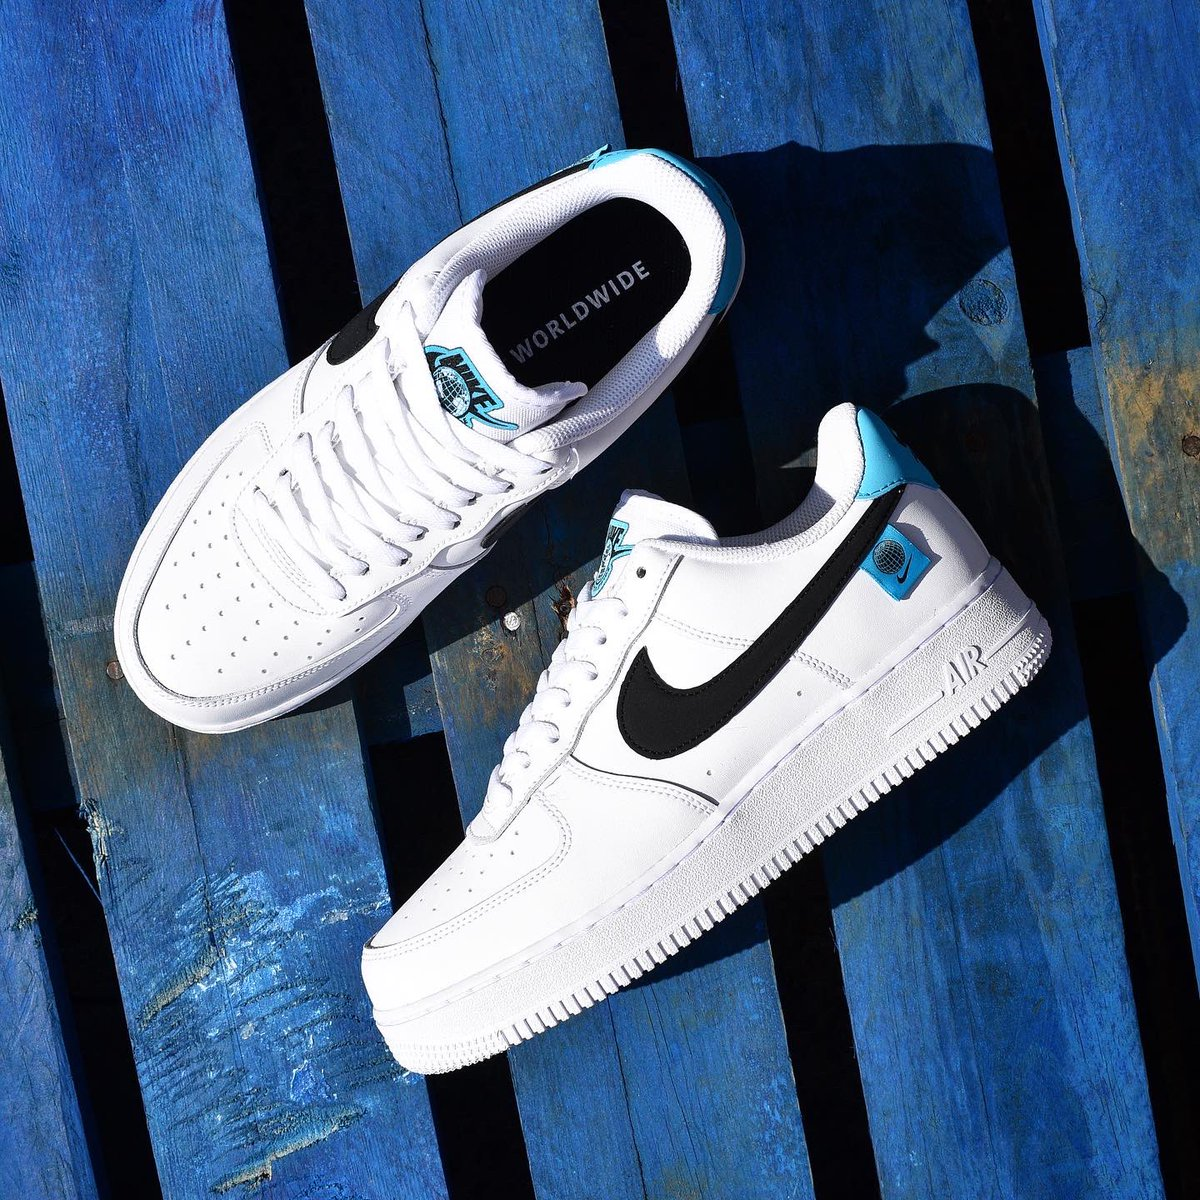 Attic Clothing On Twitter Celebrating Unity In Sport As Part Of The Worldwide Pack The Latest Nike Air Force 1 Is Now Available At Attic This Version Of The Classic Comes In